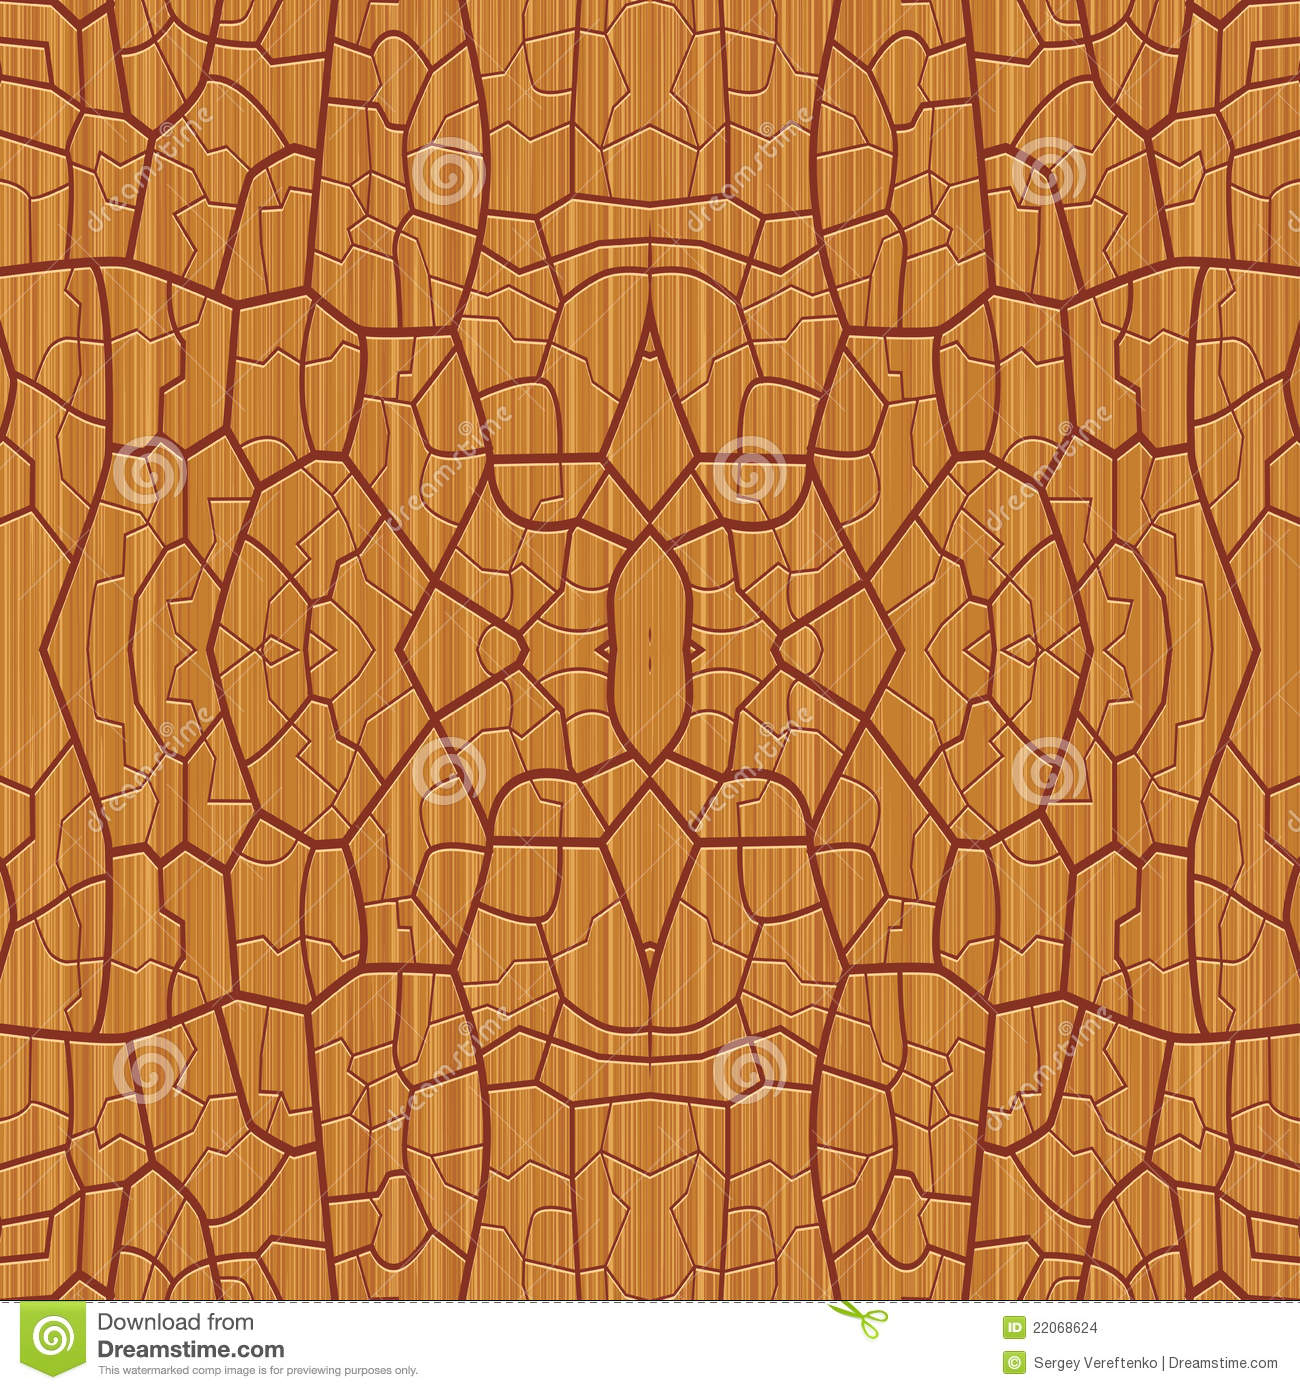 Decorative Wooden Pattern Stock Images - Image: 22068624